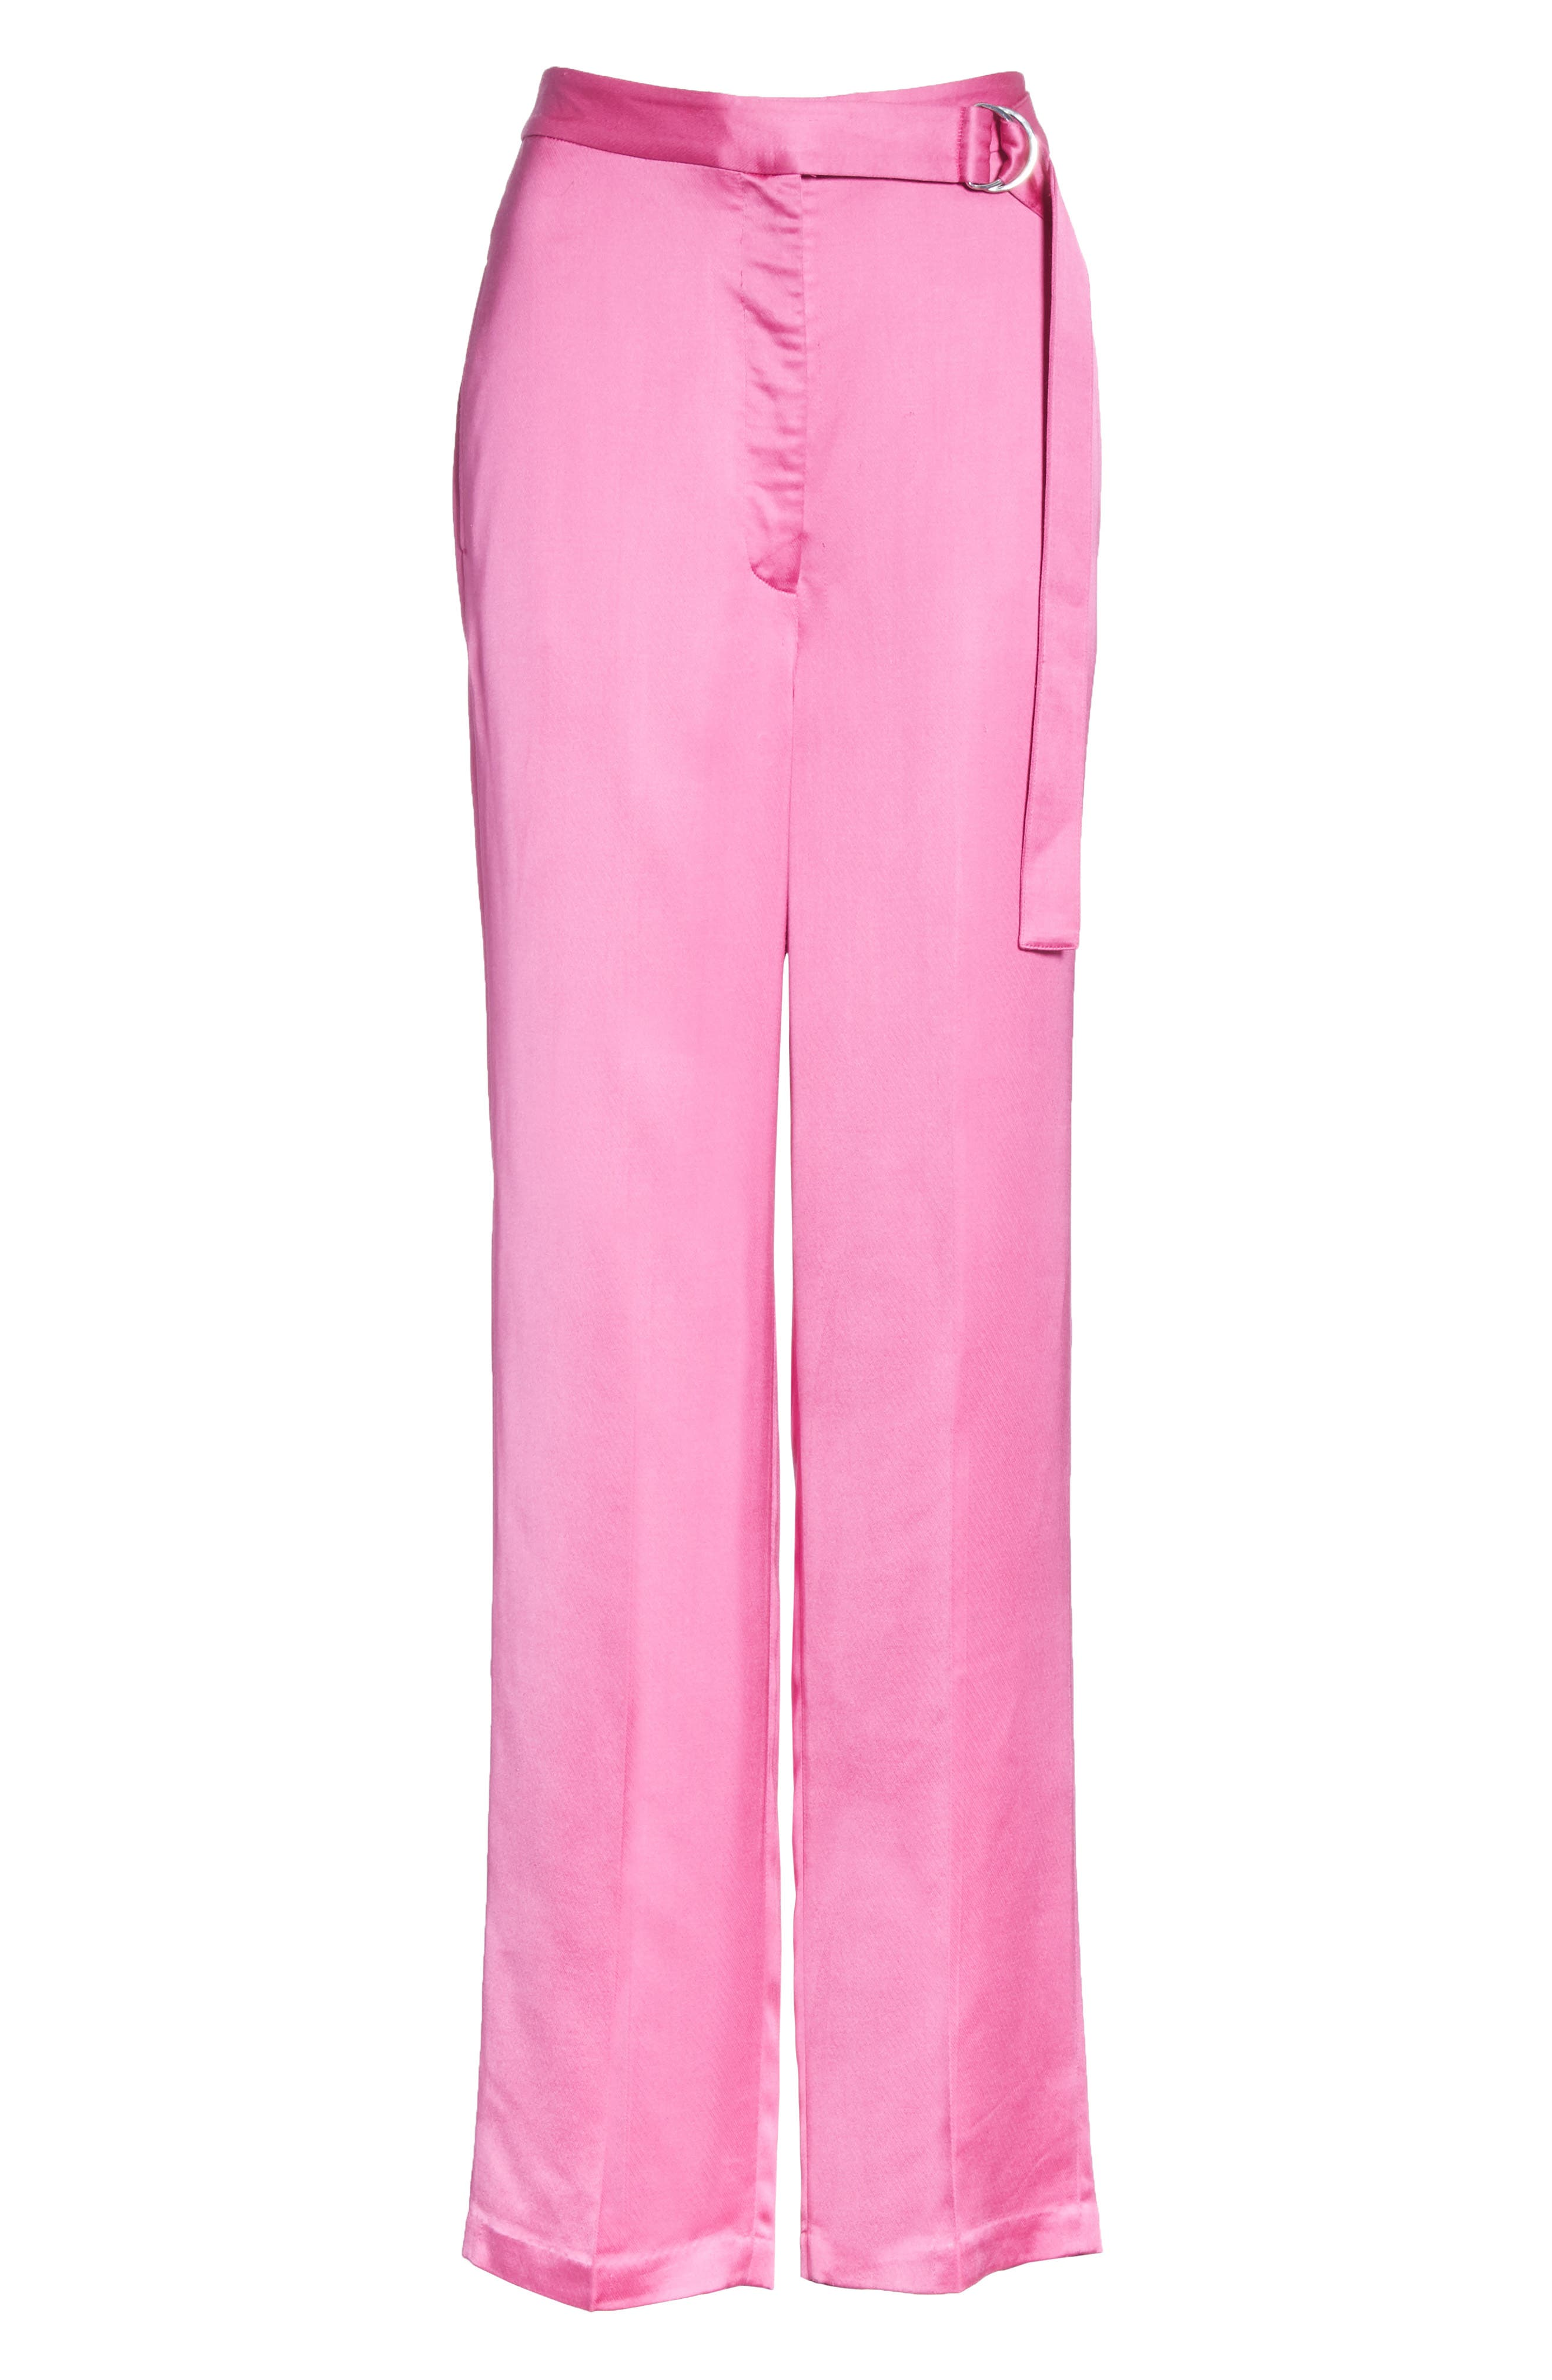 High Waist Satin Twill Pants,                             Alternate thumbnail 6, color,                             HOT PINK